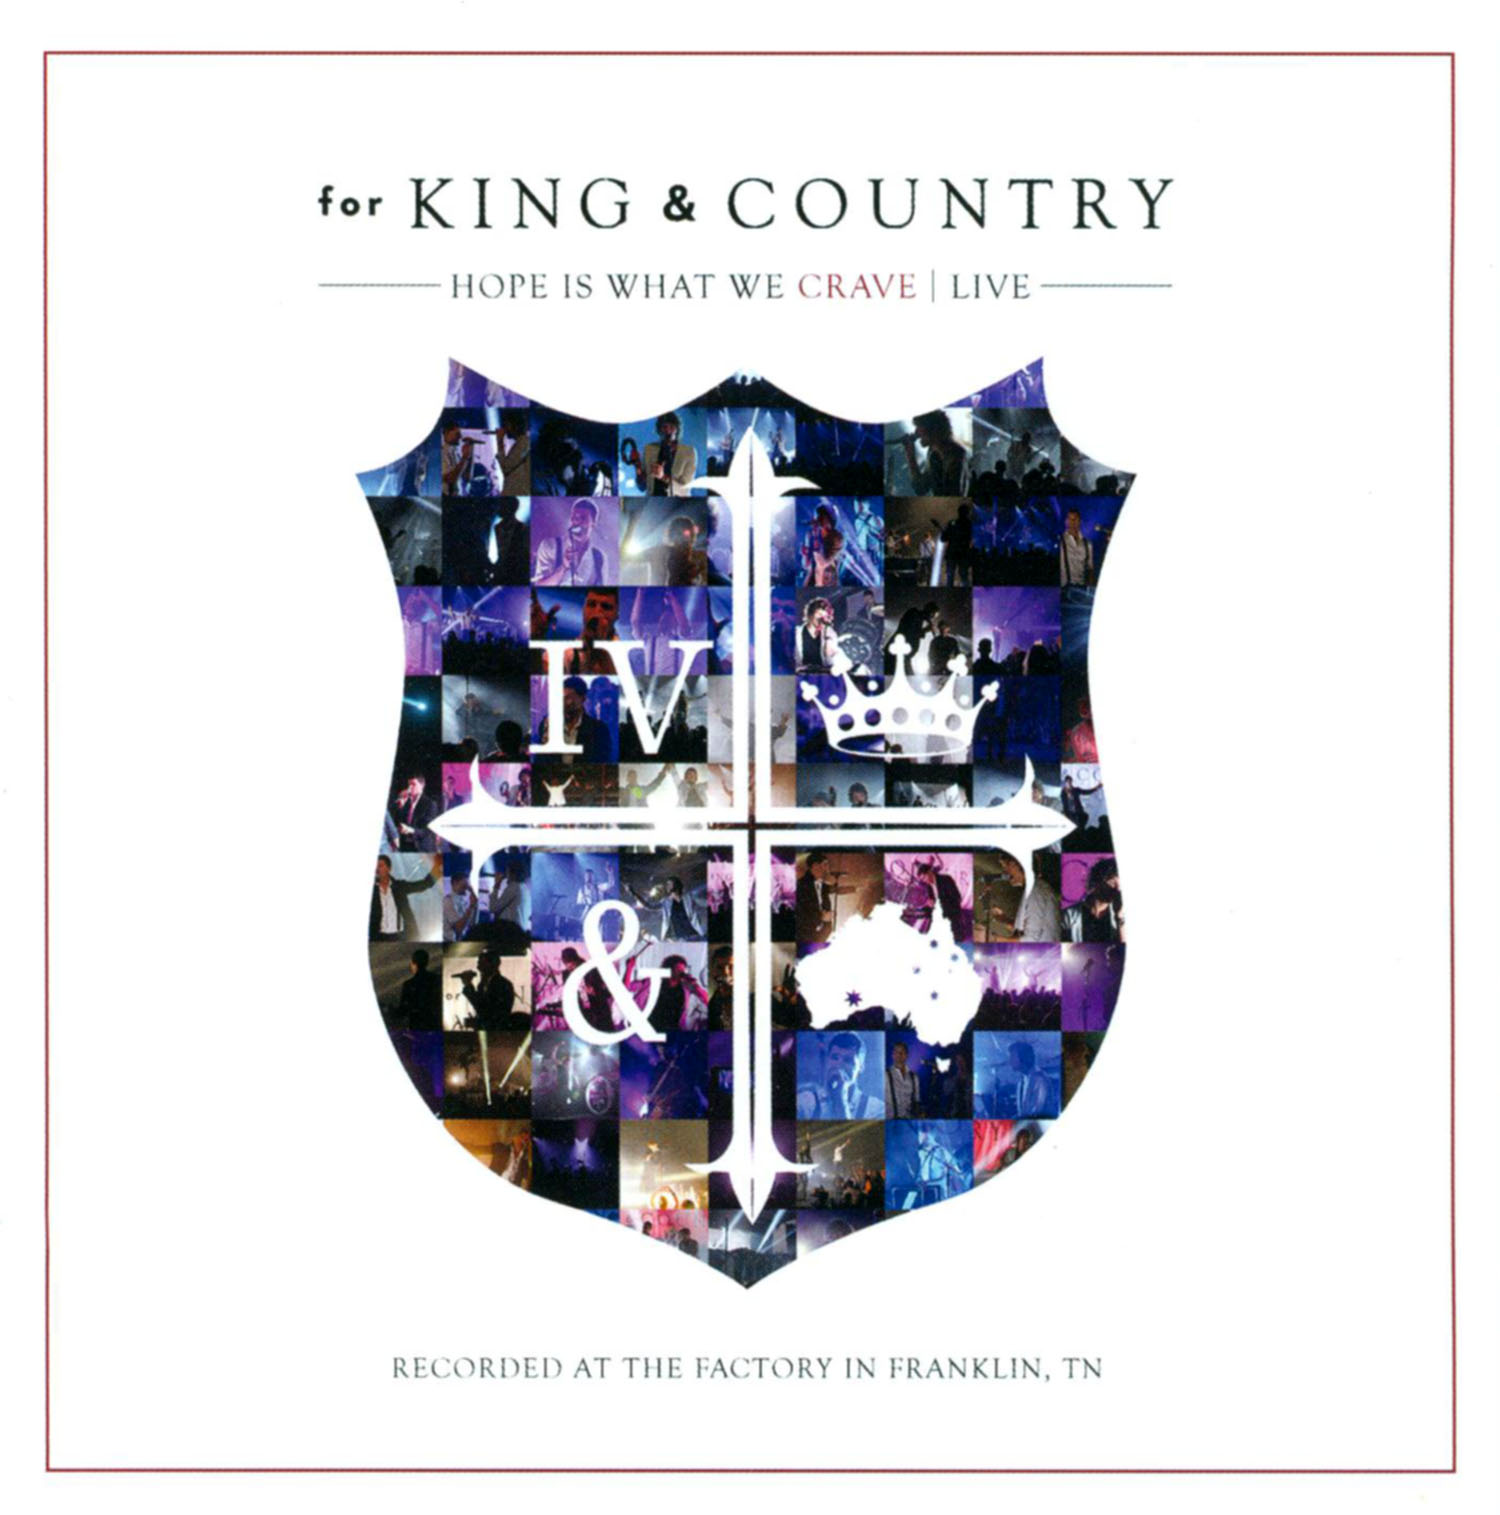 For King & Country: Hope Is What We Crave - Live